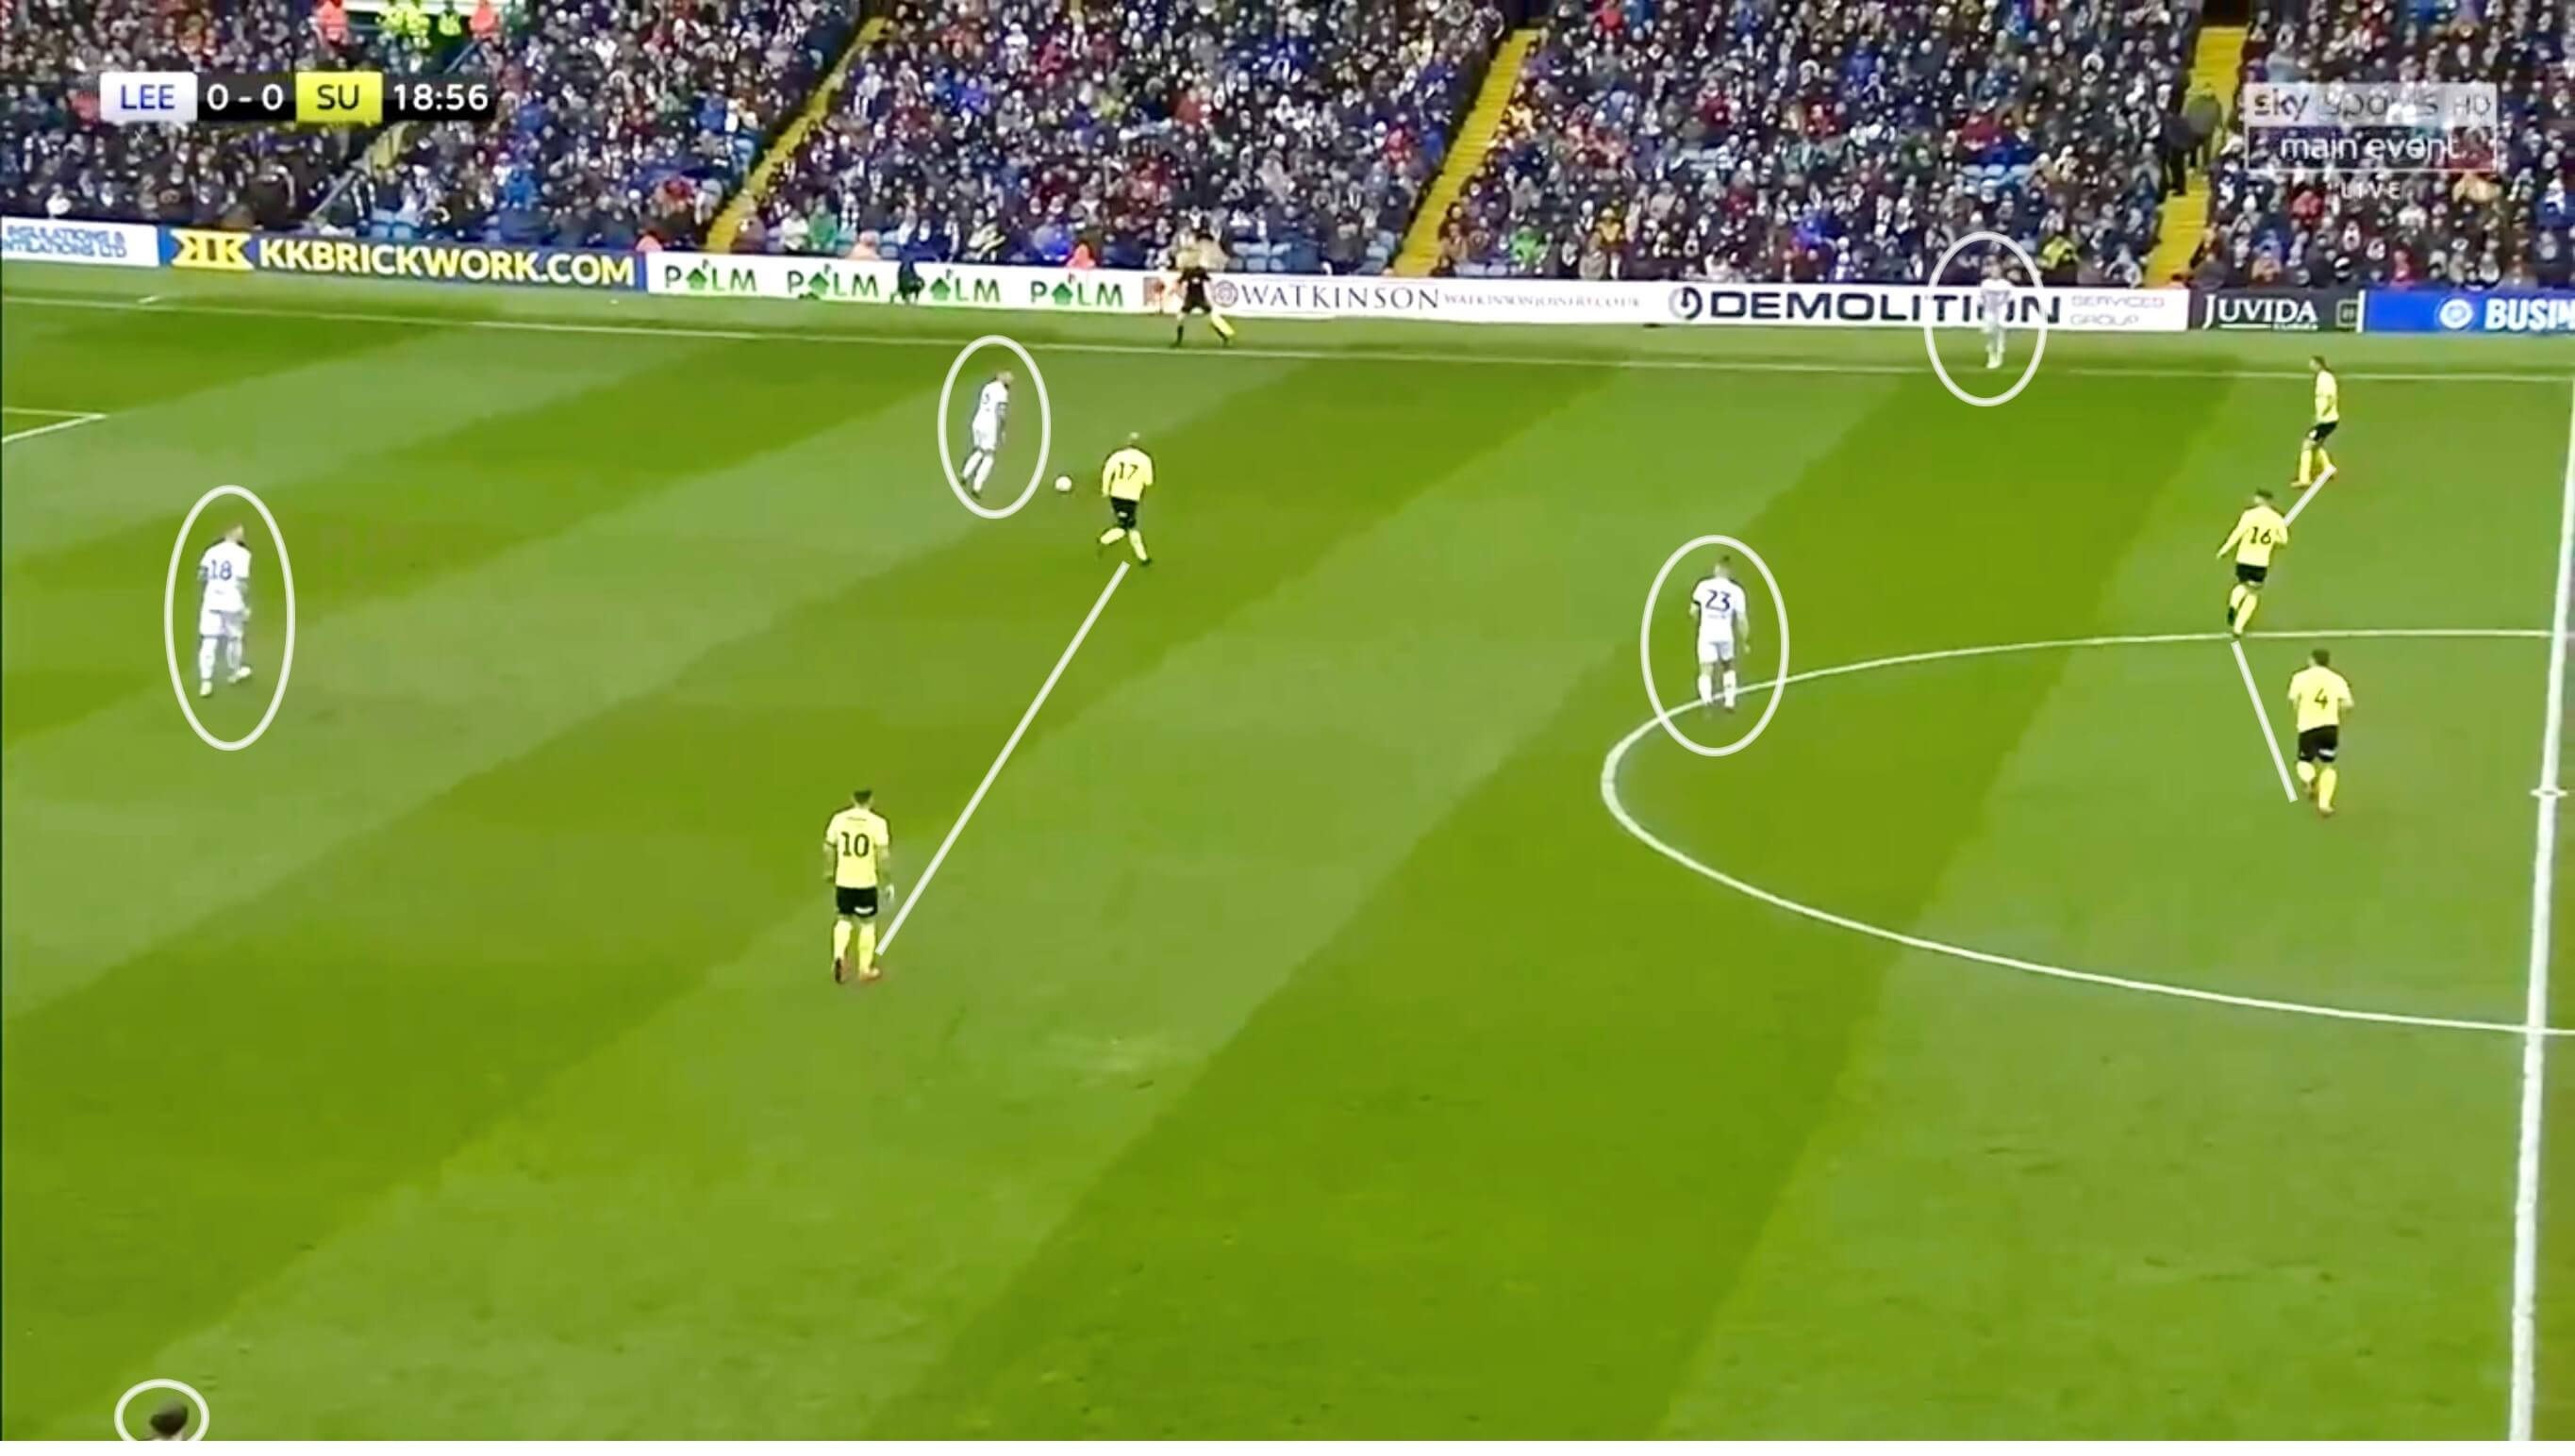 Leeds Sheffield United EFL Championship 2018/19 Tactical Analysis